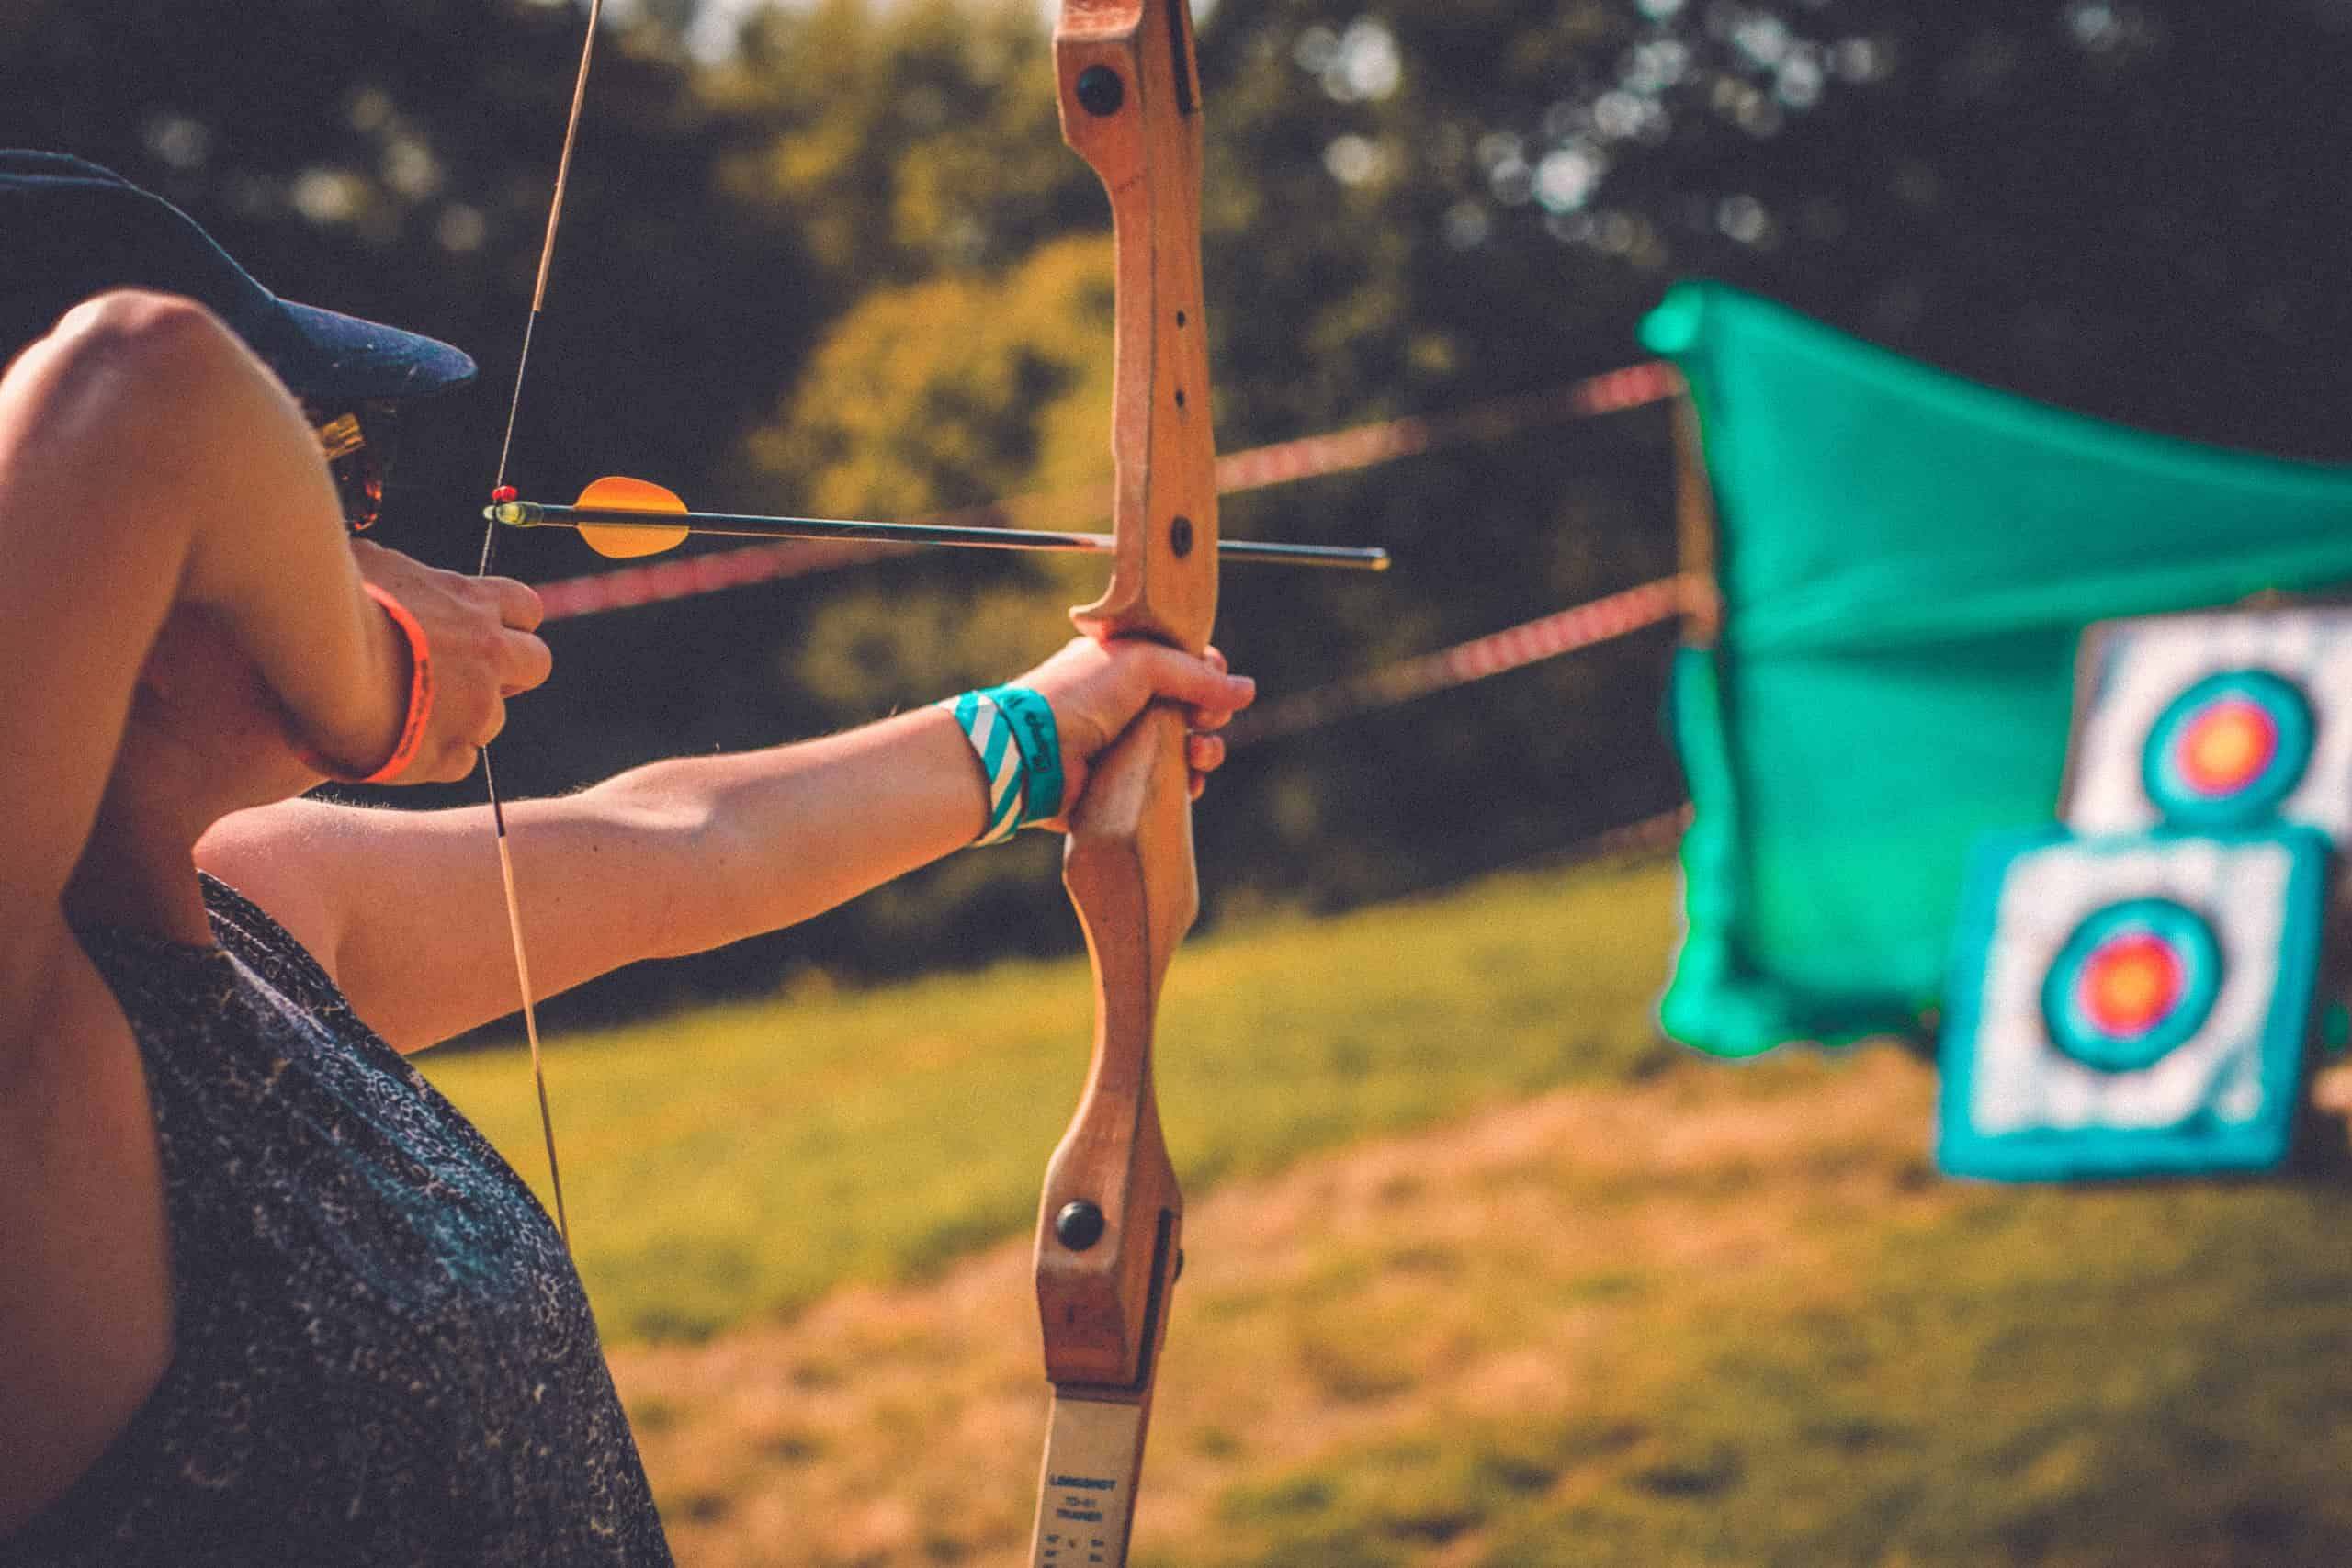 Bow and arrow at the archery activity at Camp Wildfire. A summer weekend break in a forest near London and Kent. An outdoor woodland retreat featuring adventure activities, live music, DJs, parties and camping. Half summer adventure activity camp, half music festival, for adults only.